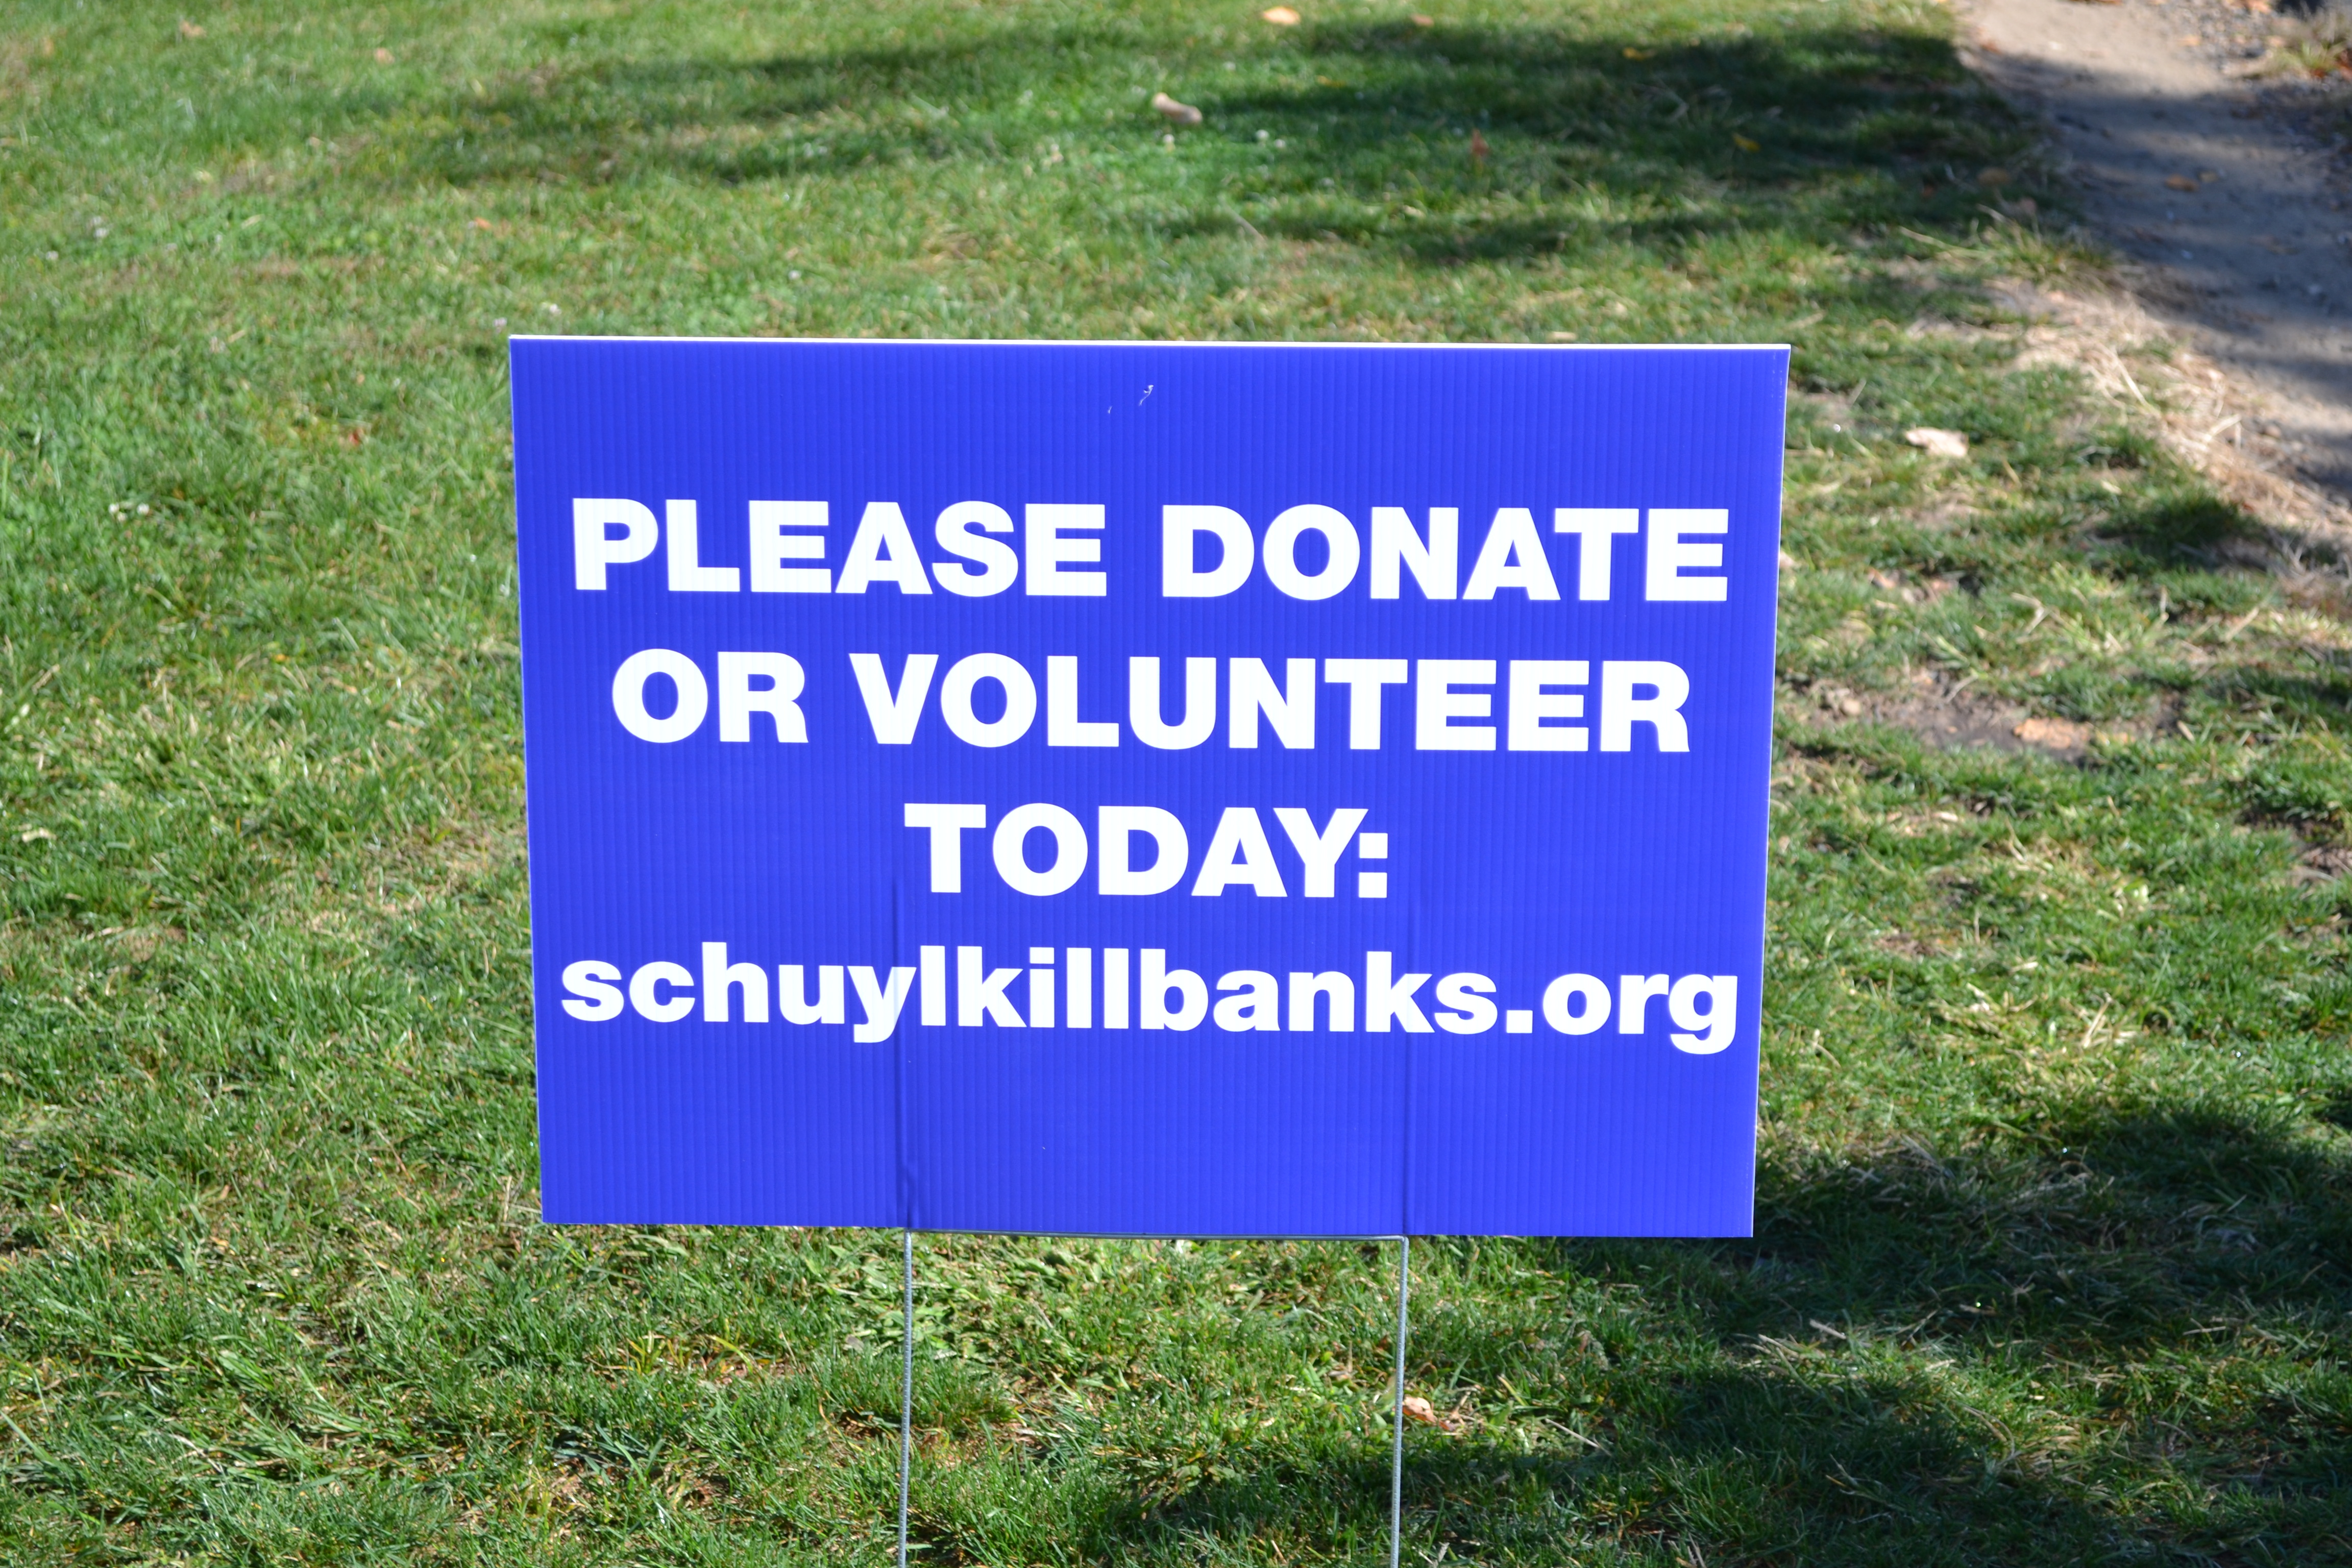 Schuylkill Banks' awareness, funding and volunteer campaign